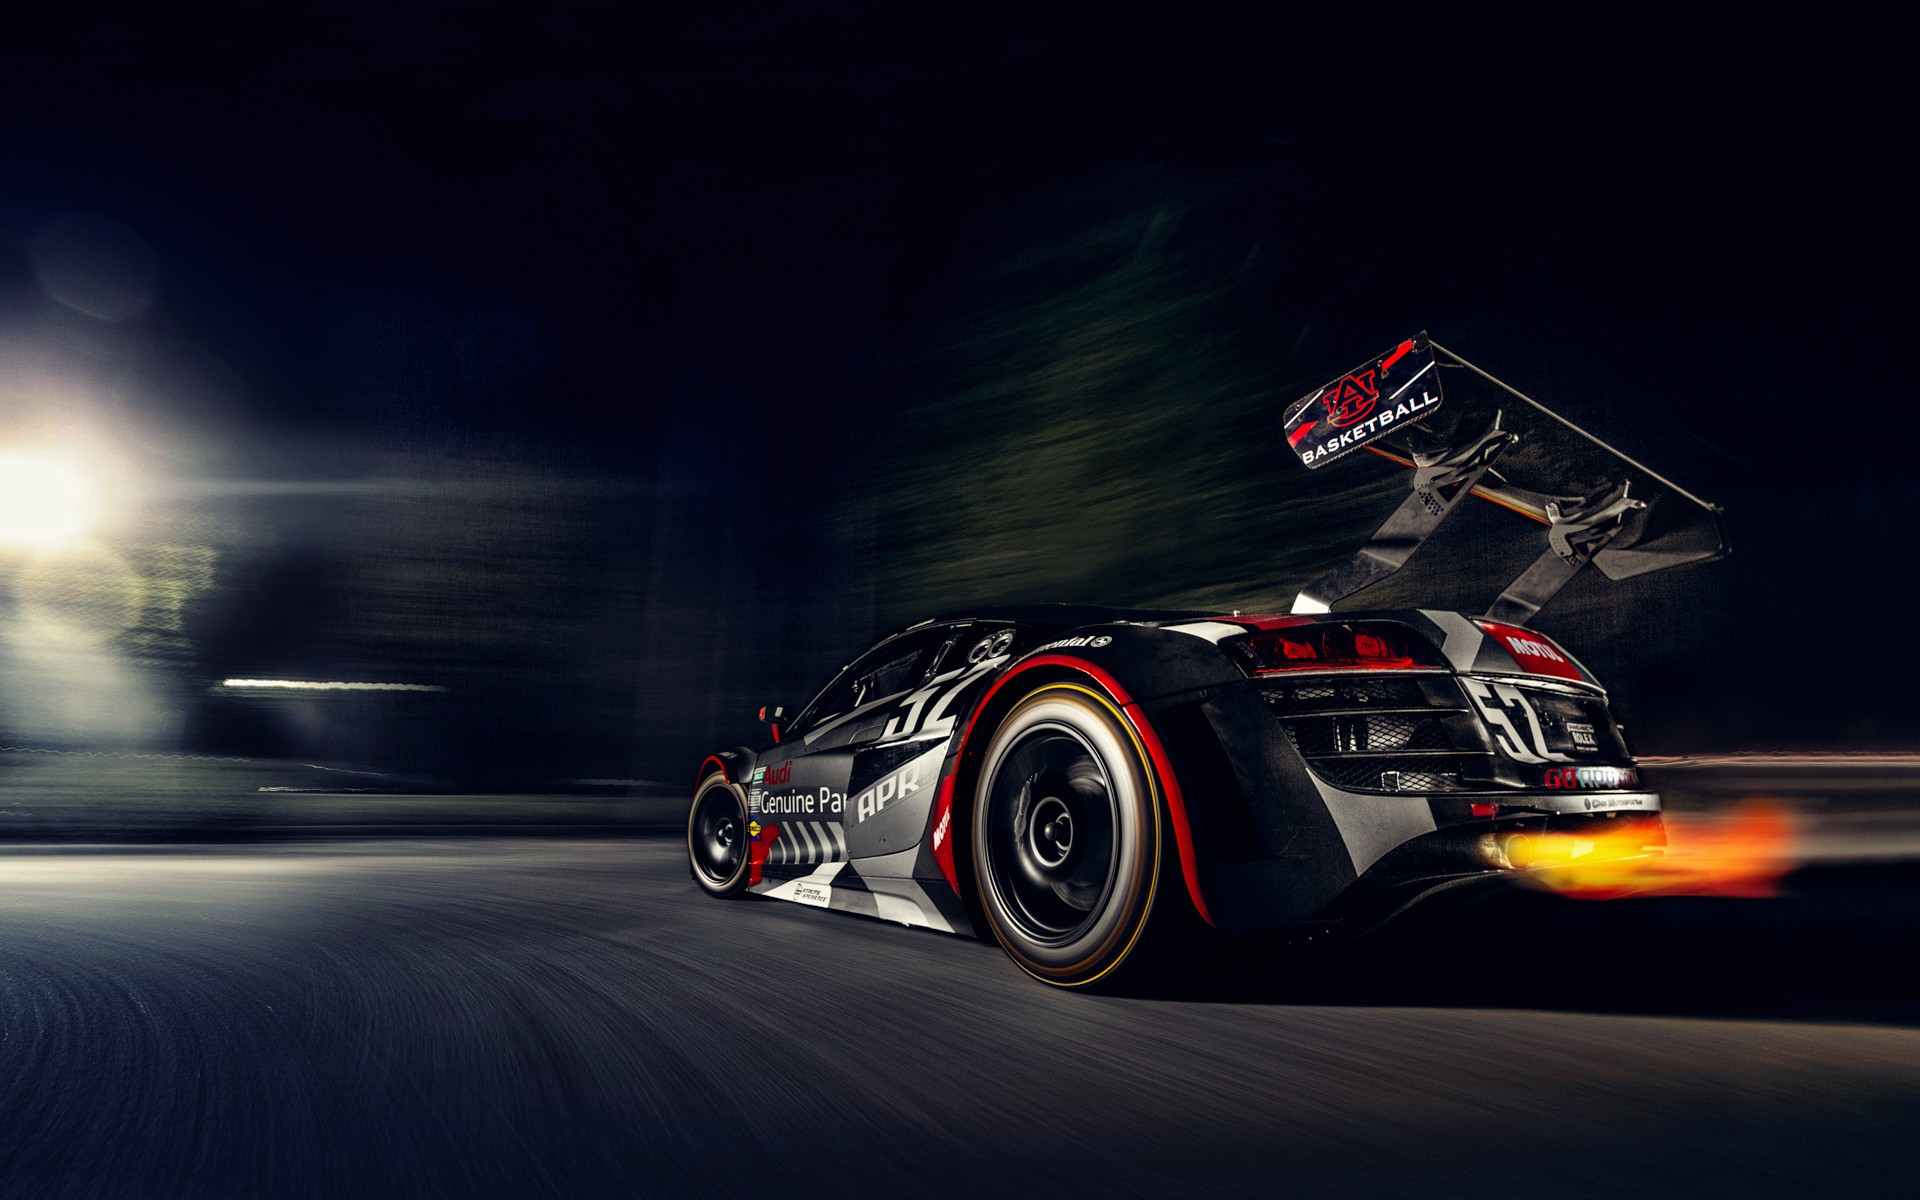 772 <b>Race Car</b> HD <b>Wallpapers</b> | Backgrounds - <b>Wallpaper</b> Abyss